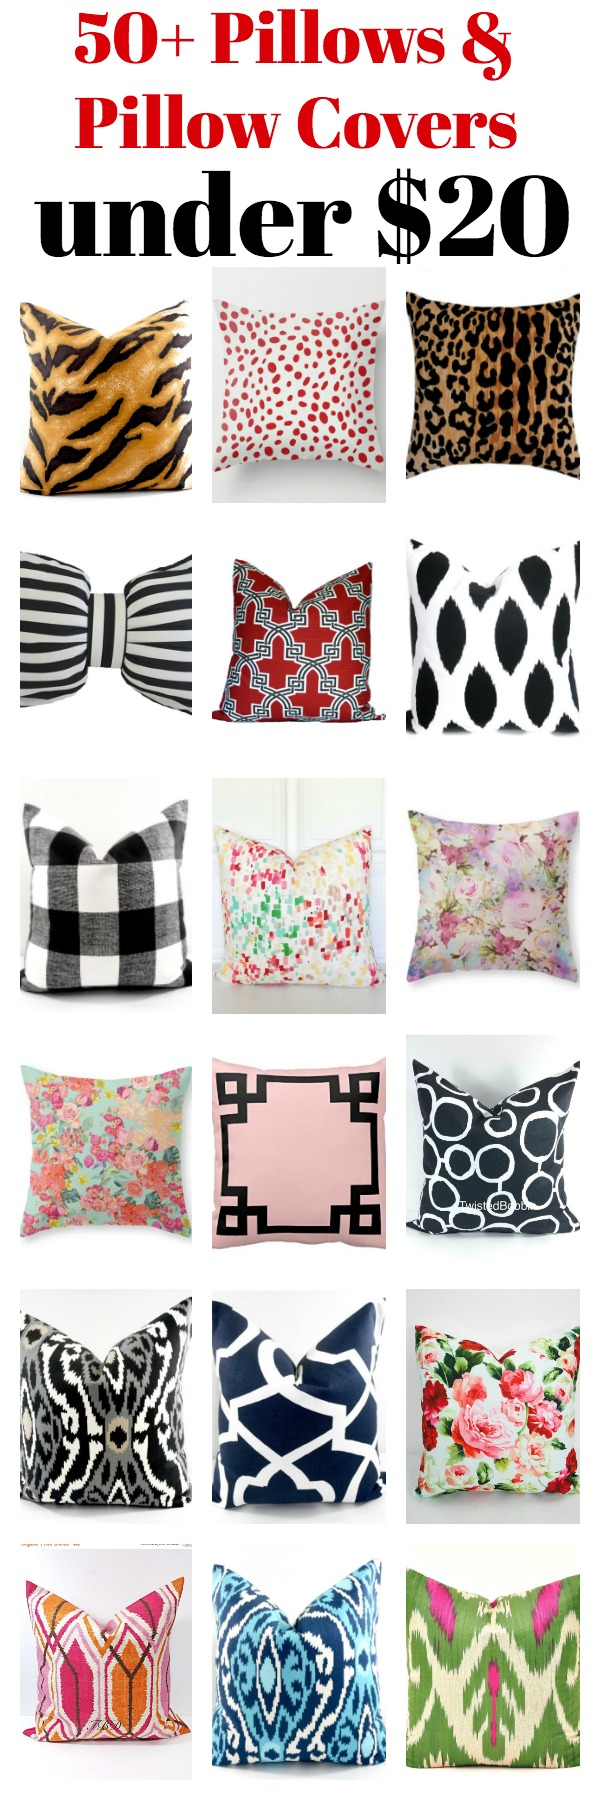 A great source for affordable pillows of every color and pattern! Over fifty pillow covers and pillows under $20 in tons of colors and patterns!